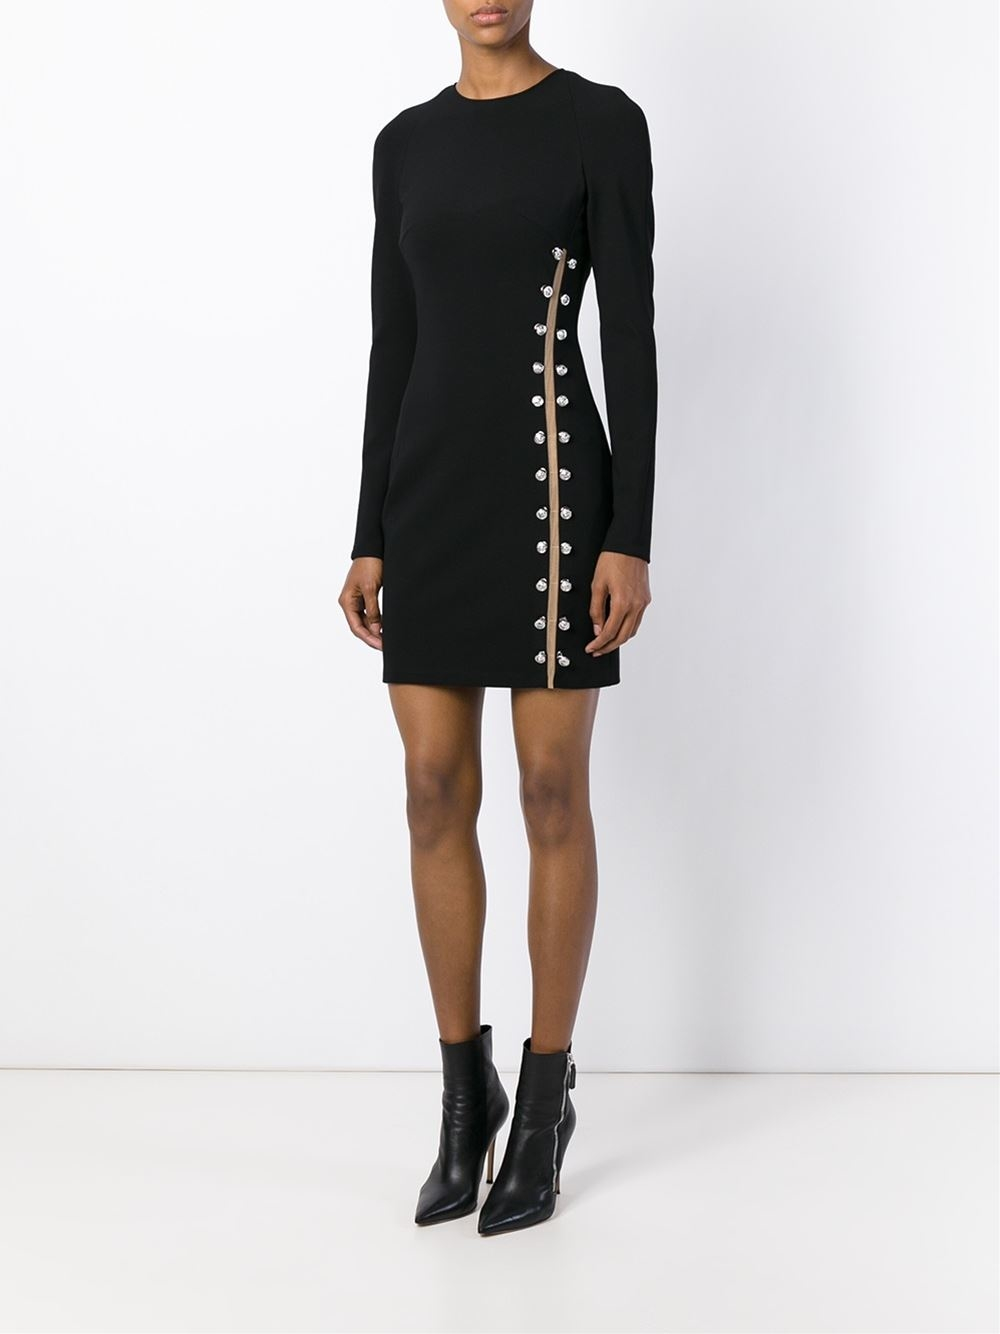 versus versace none safety pin dress none product 4 566231646 normal